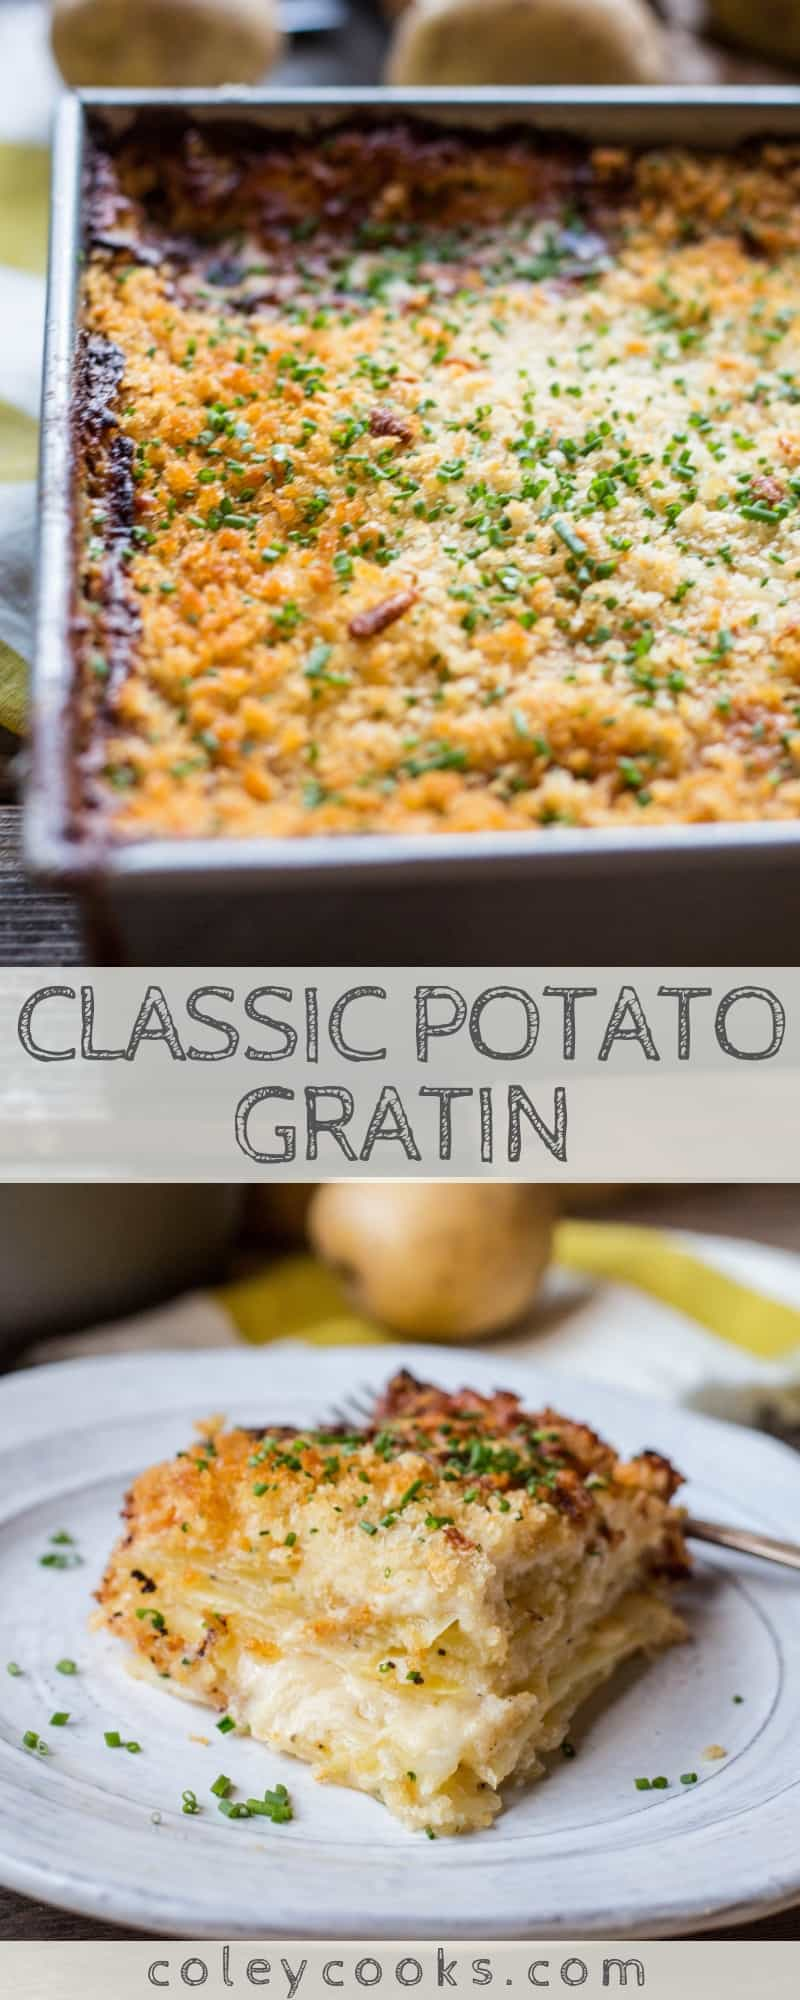 CLASSIC POTATO GRATIN | This classic recipe for potato gratin is a simple, show stopping potato side dish recipe! Rich, creamy, crunchy side dish perfection. #Thanksgiving #side #Christmas #potato #gratin #classic #recipe #easy | ColeyCooks.com